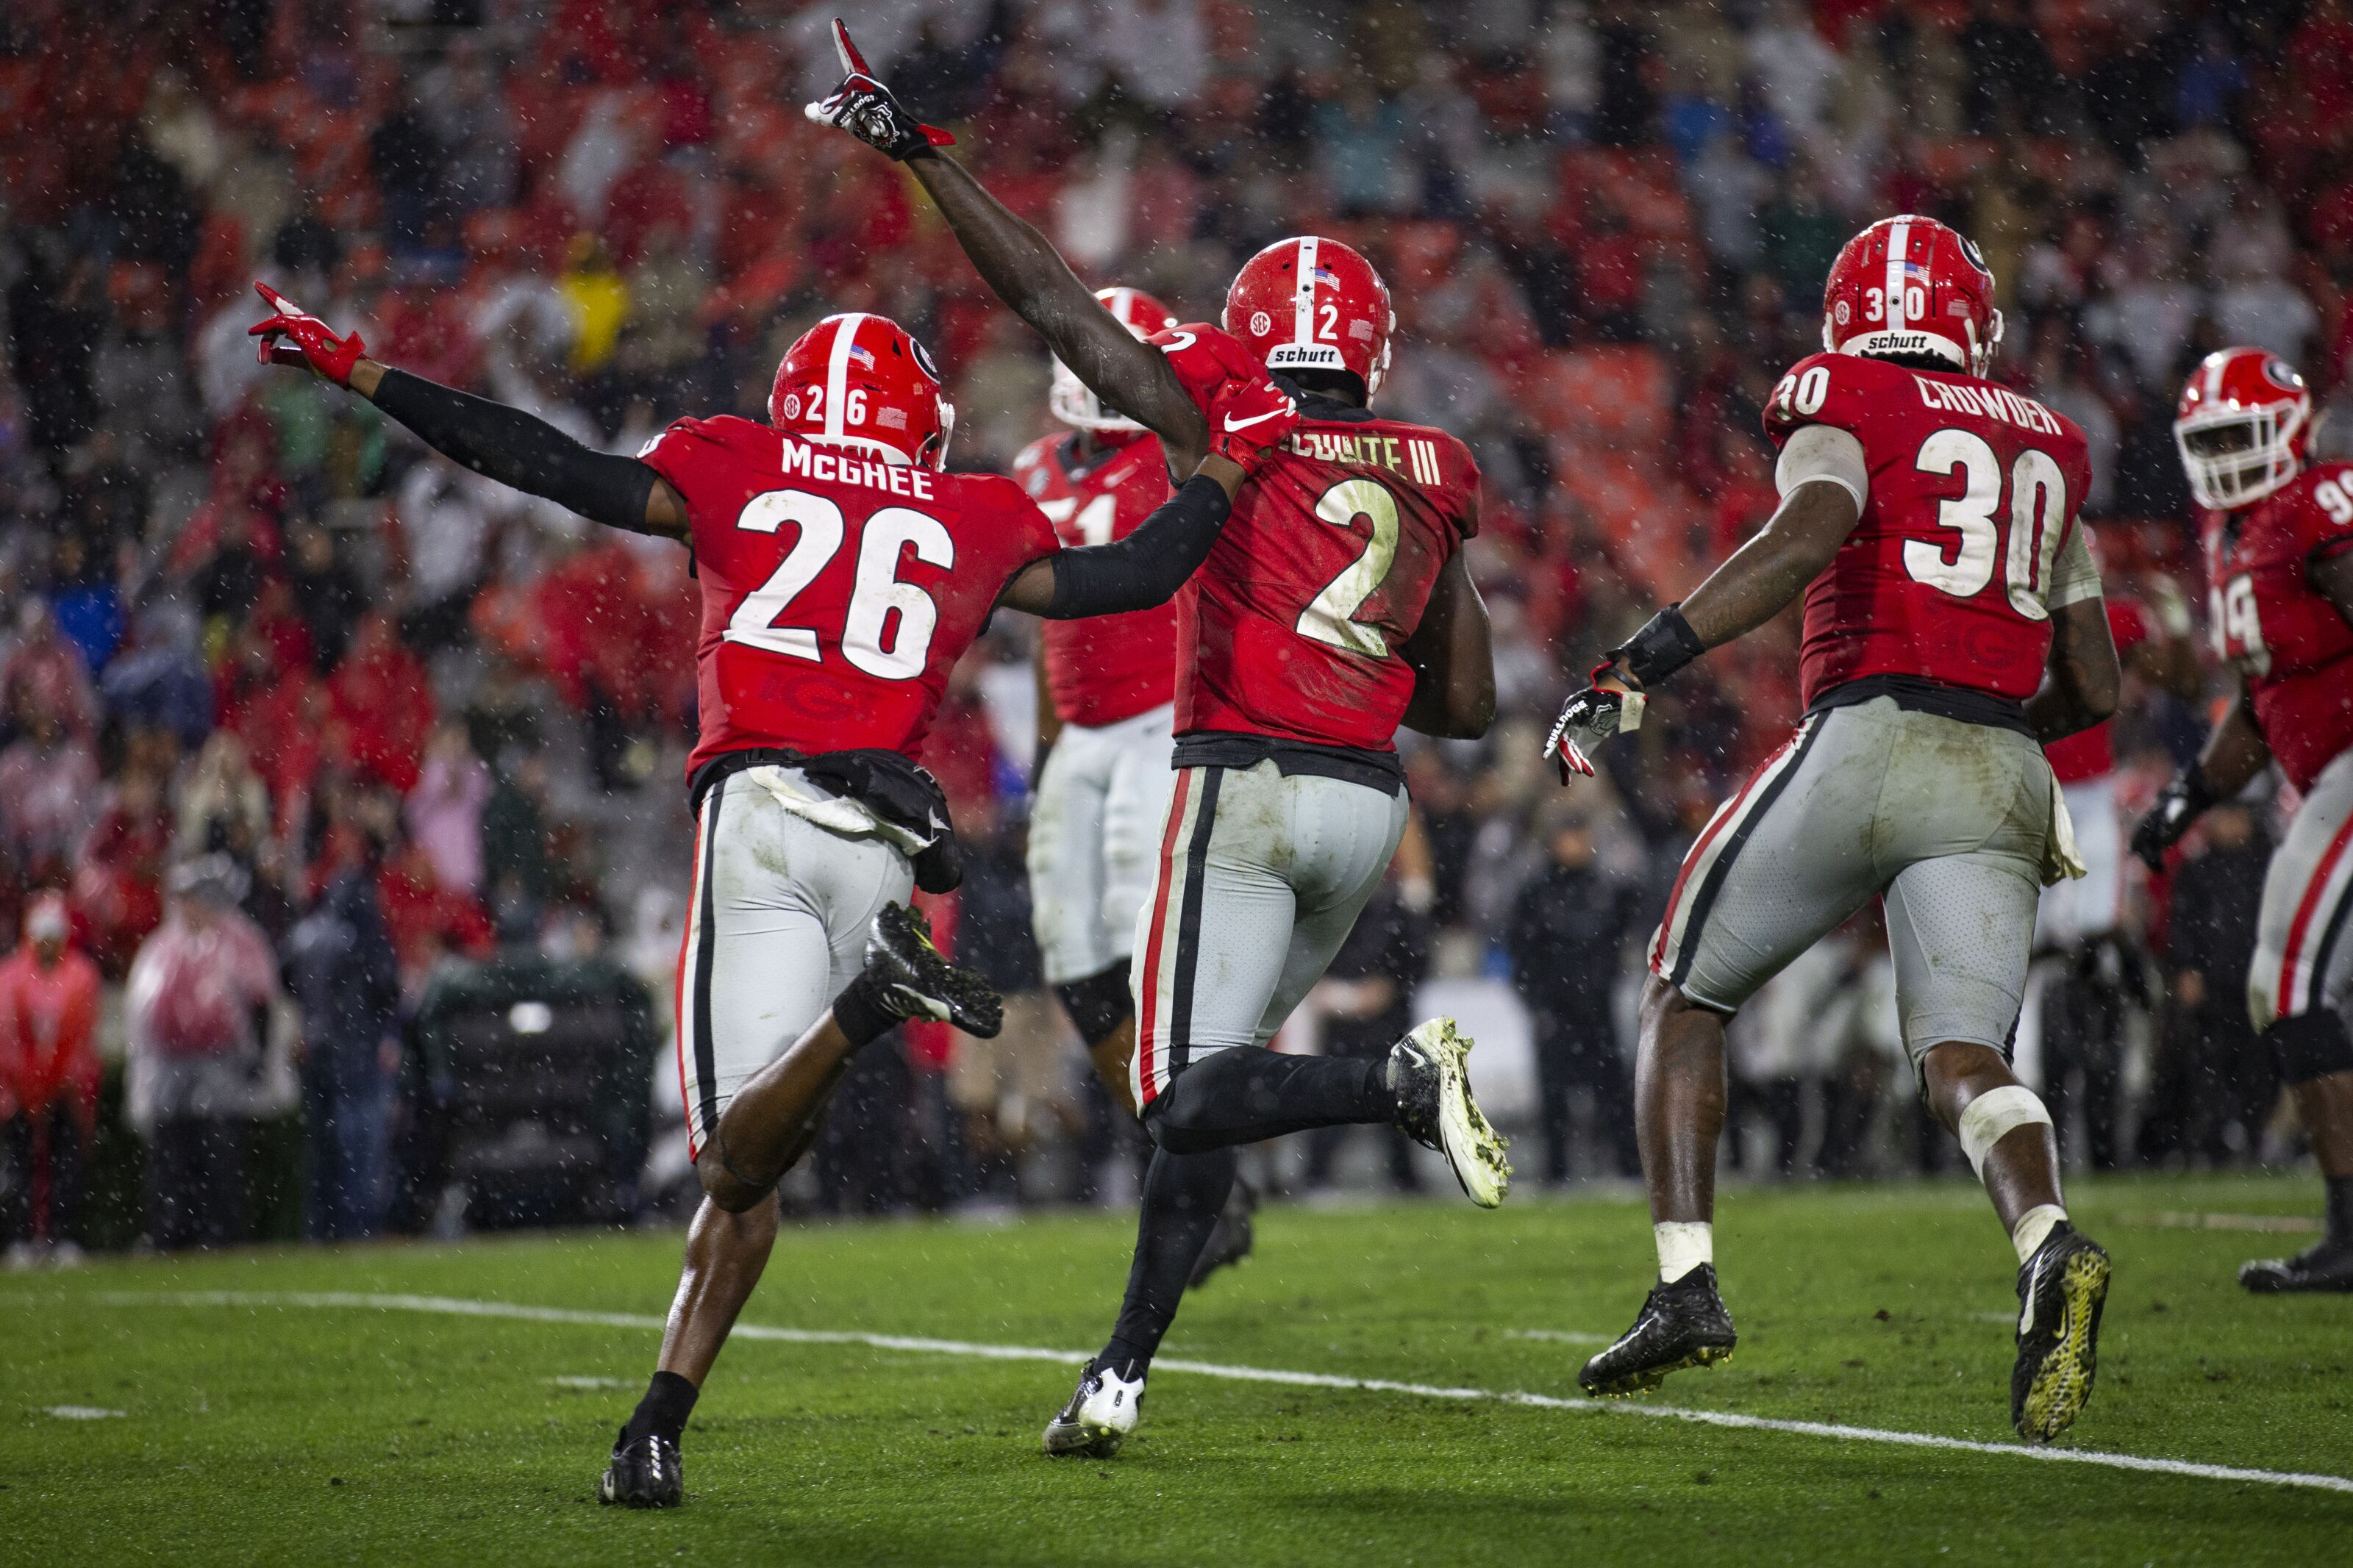 Georgia Football: LSU has not seen a defense like these Junkyard Dawgs